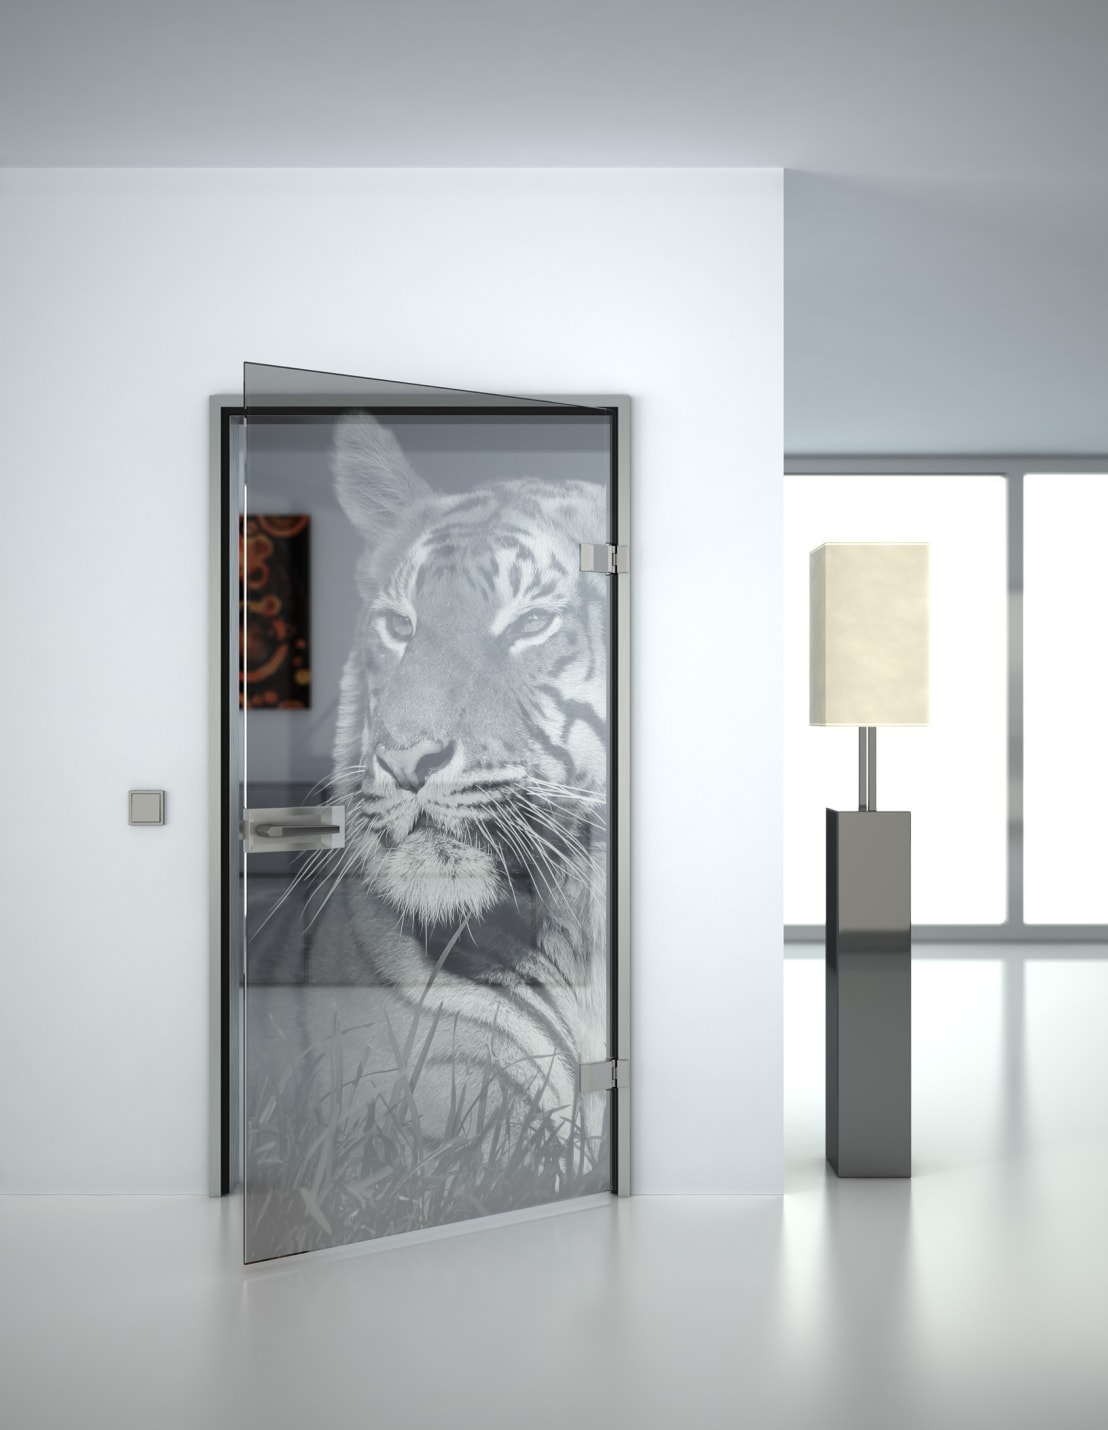 Lionidas spiegel 4779 made house decor - Lionidas spiegel ...